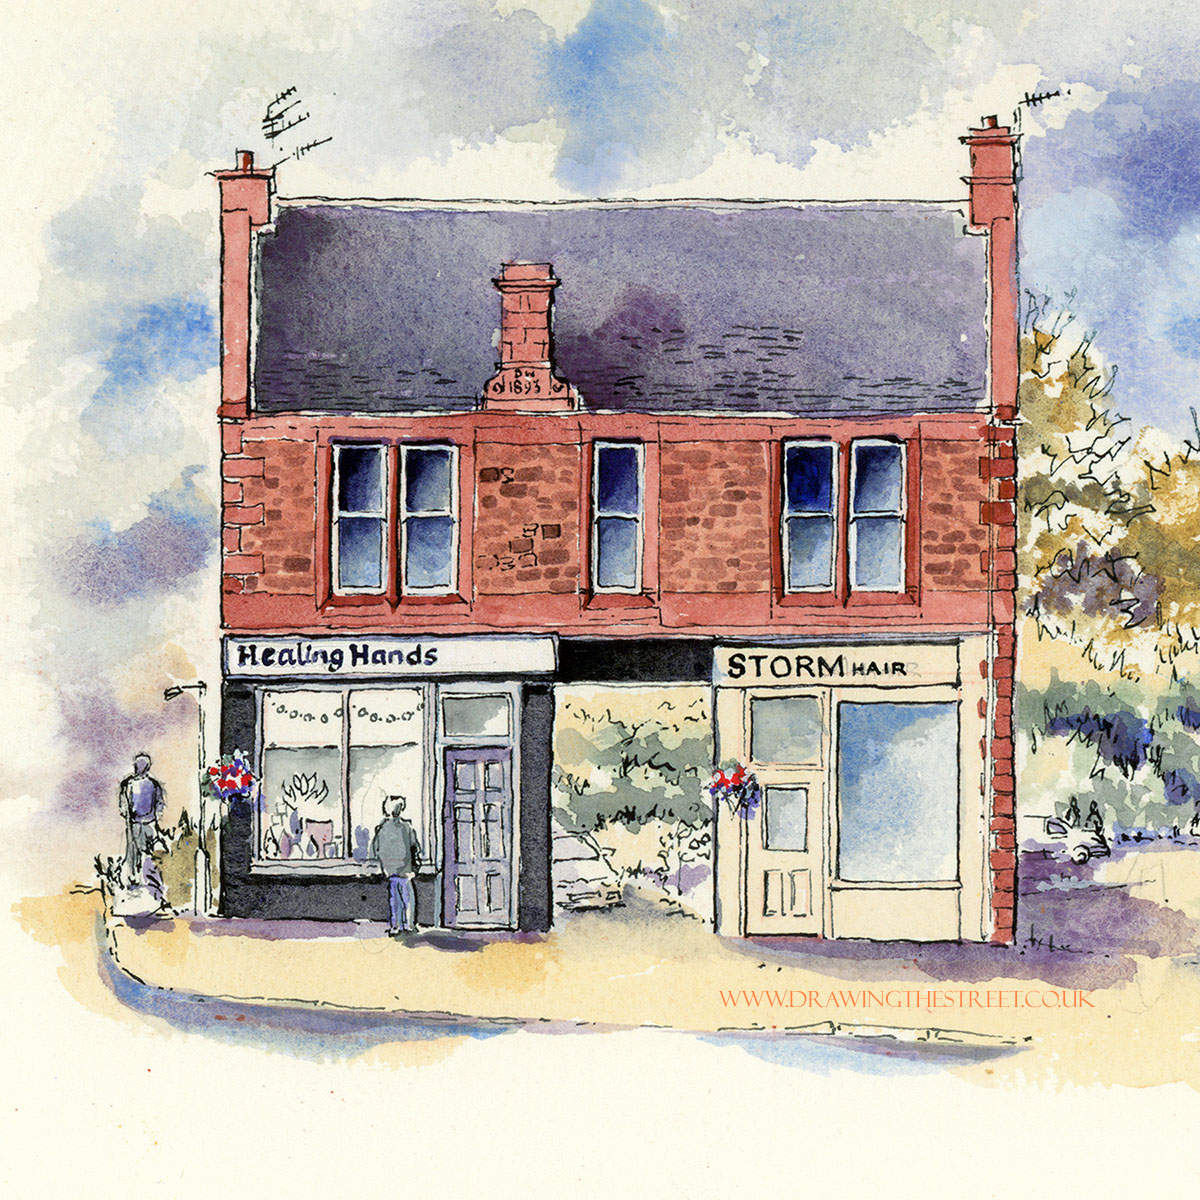 drawing by ronnie cruwys of healing hands and storm hair wellgate lanark